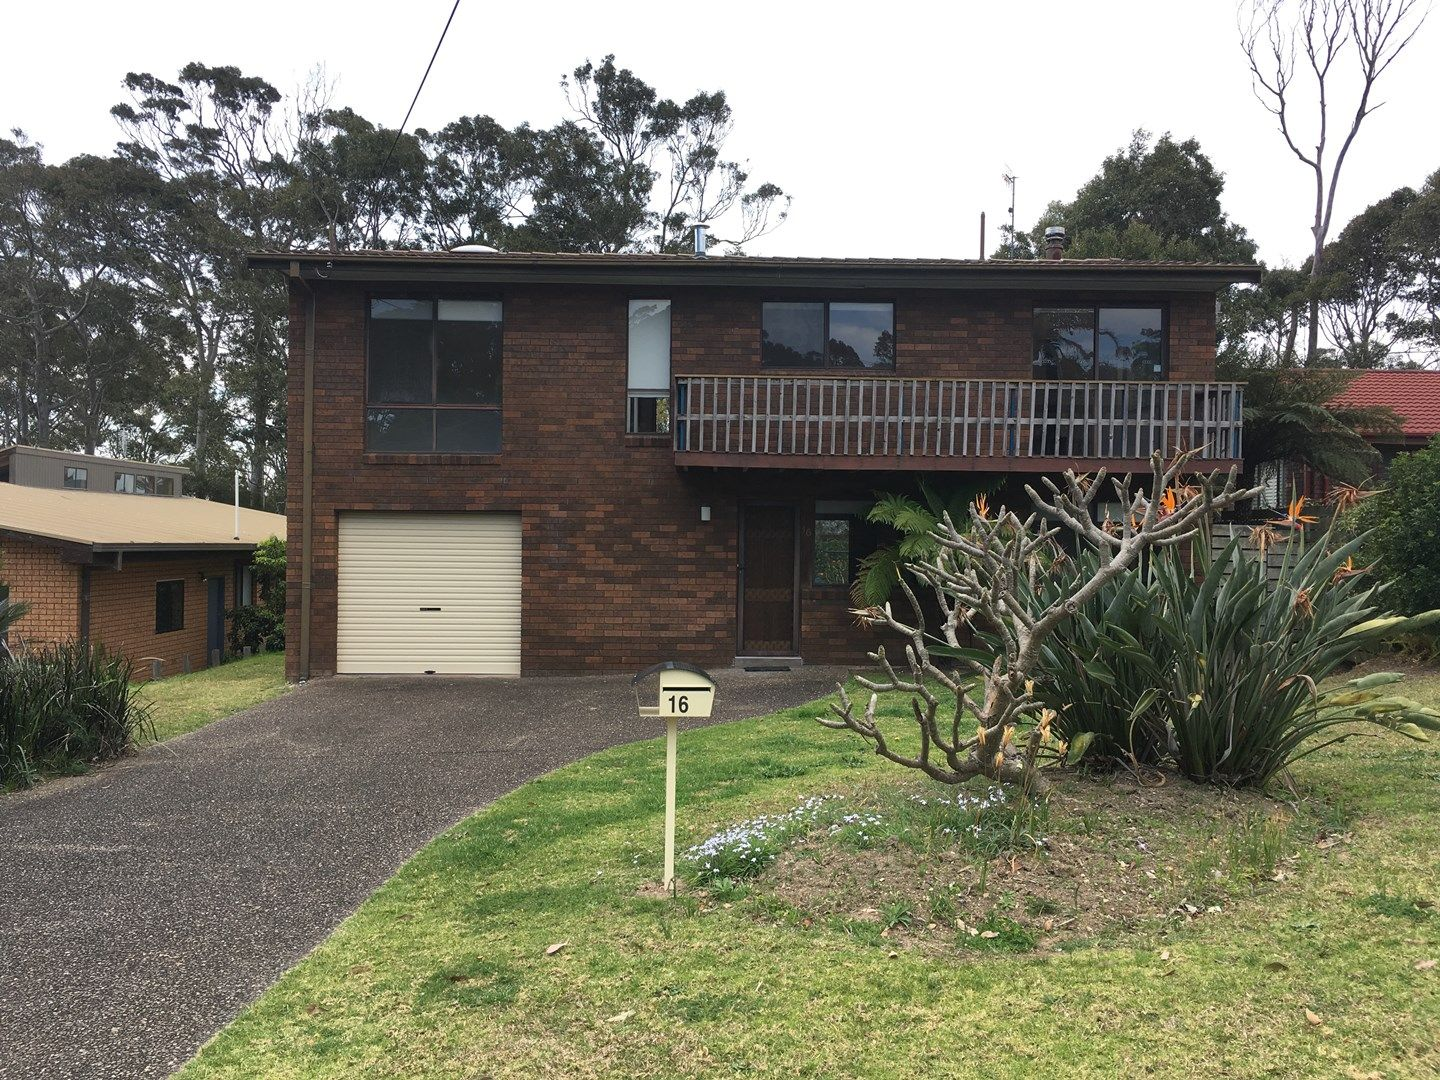 16 Endeavour Ave, Lilli Pilli NSW 2536, Image 0